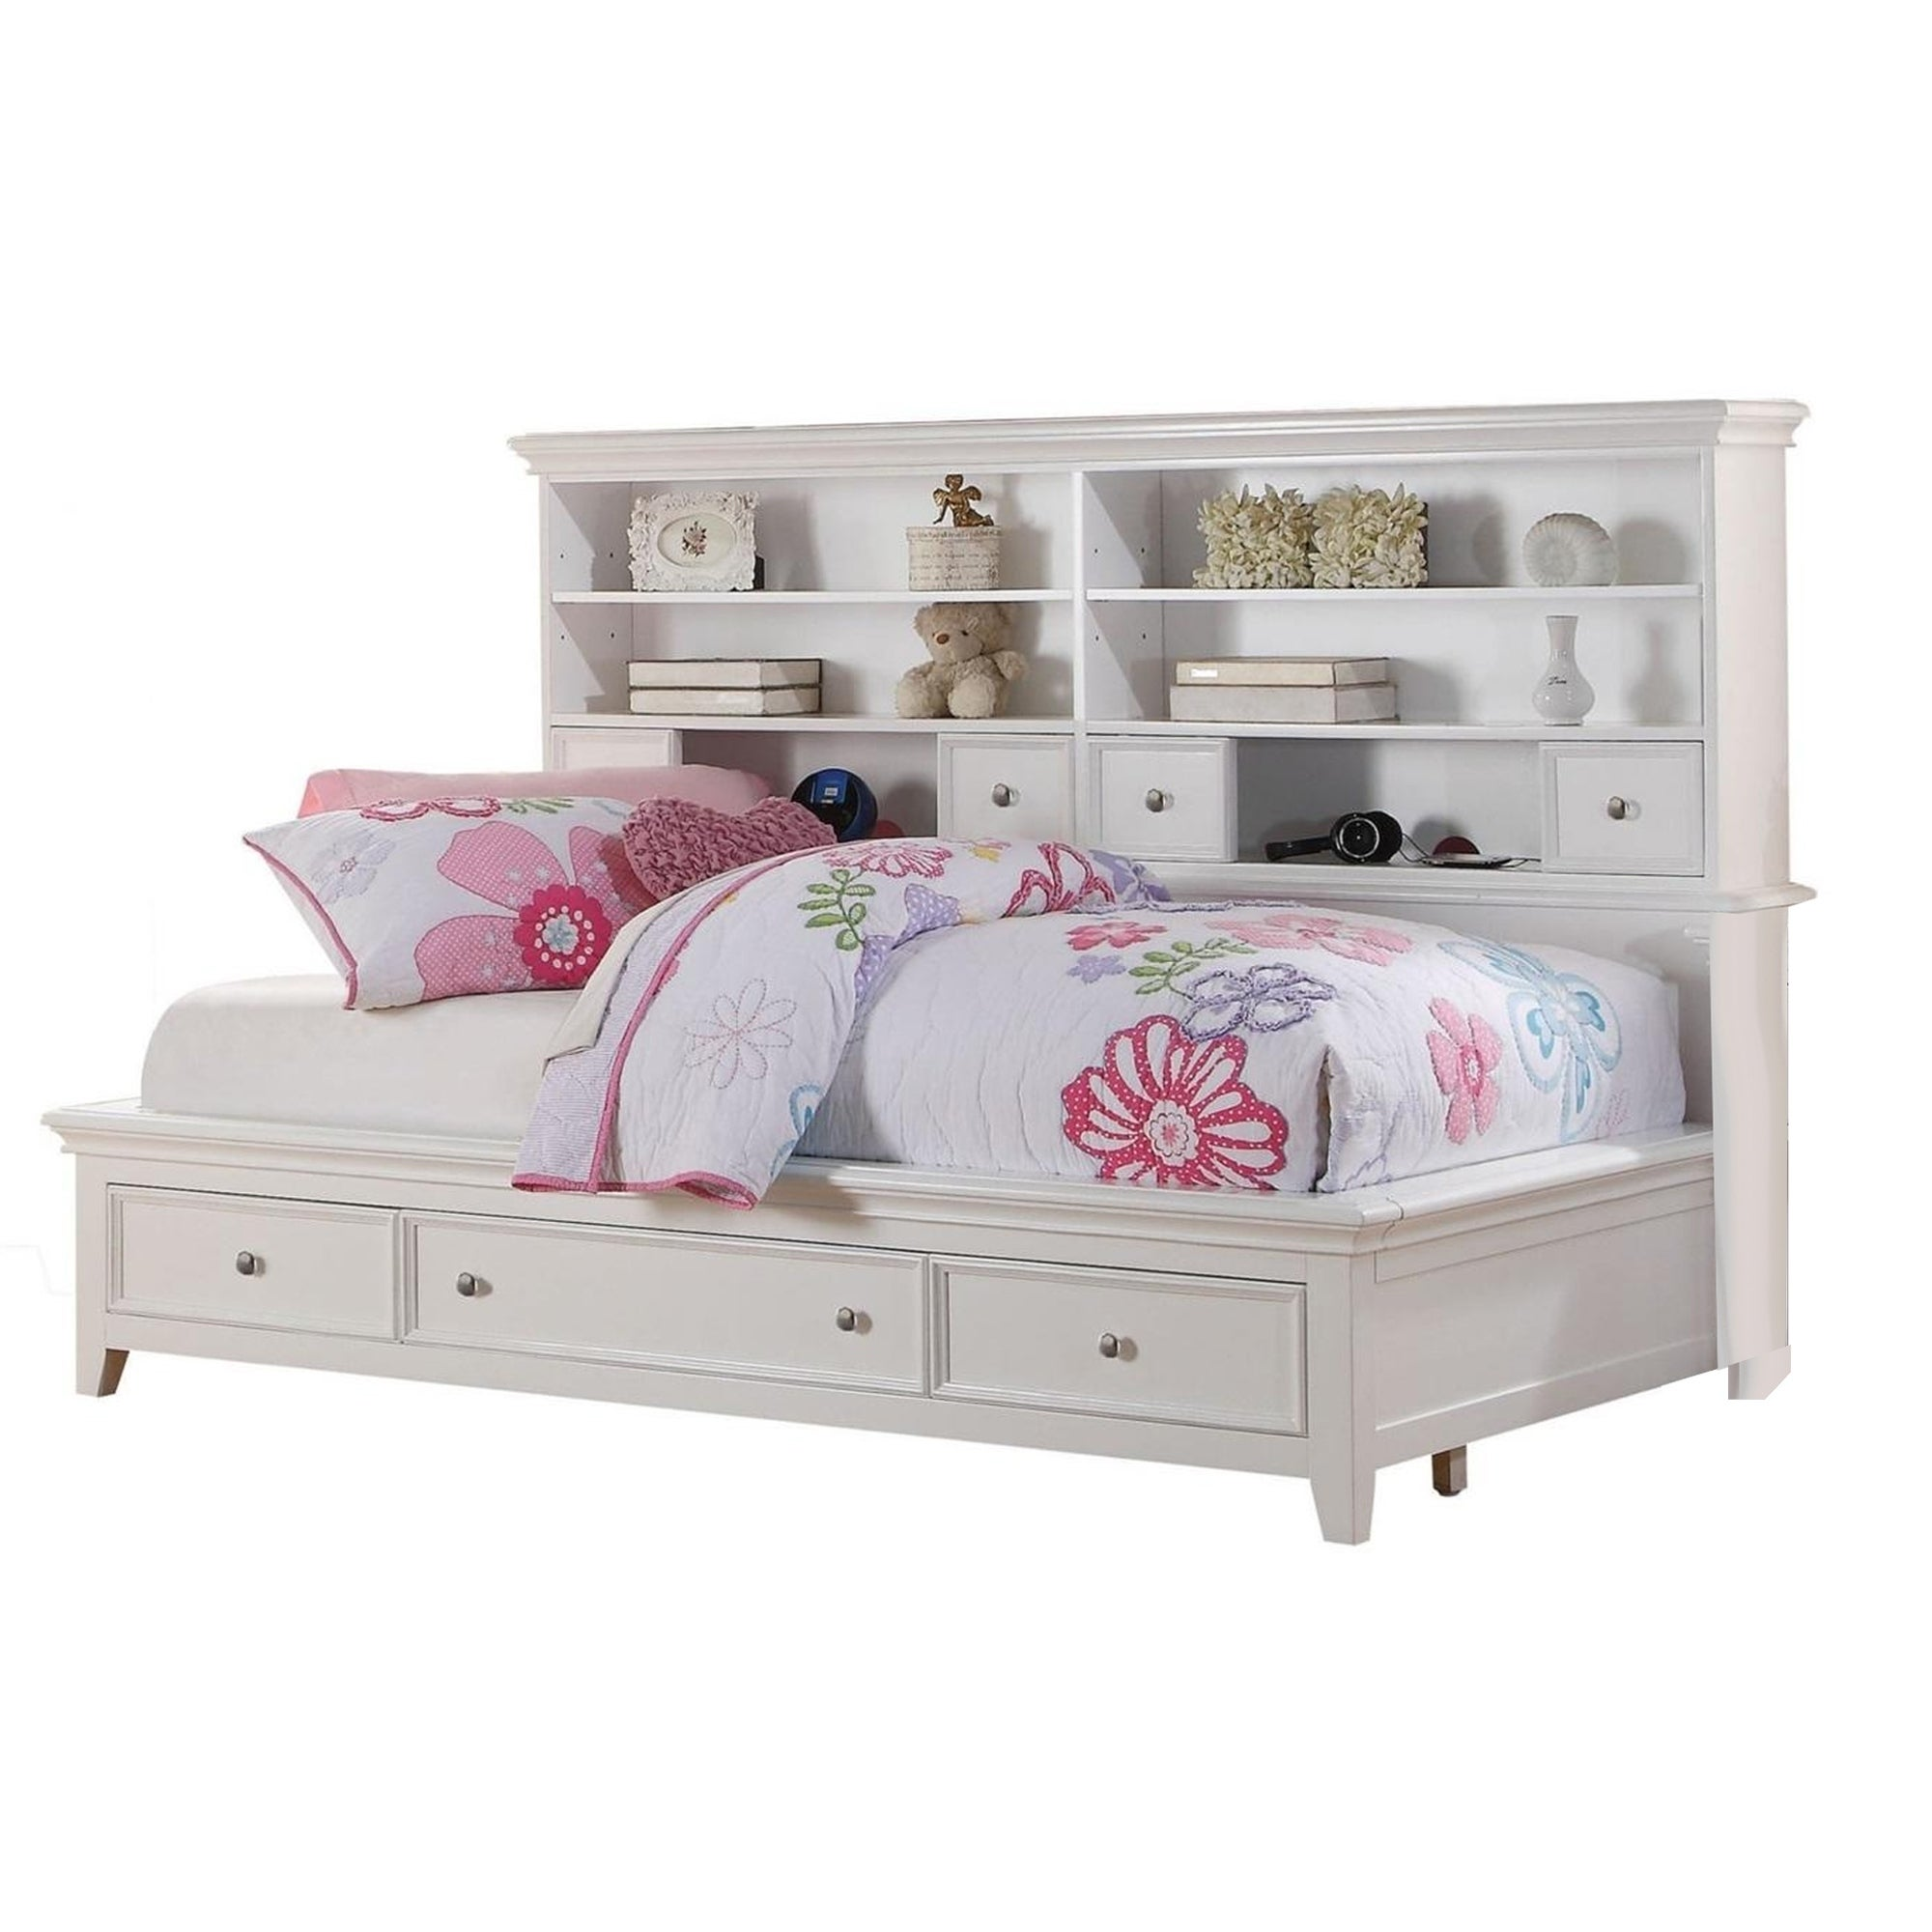 Contemporary Style Full Size Bed With Bookcase Headboard And Multiple Storage White Overstock 29713766